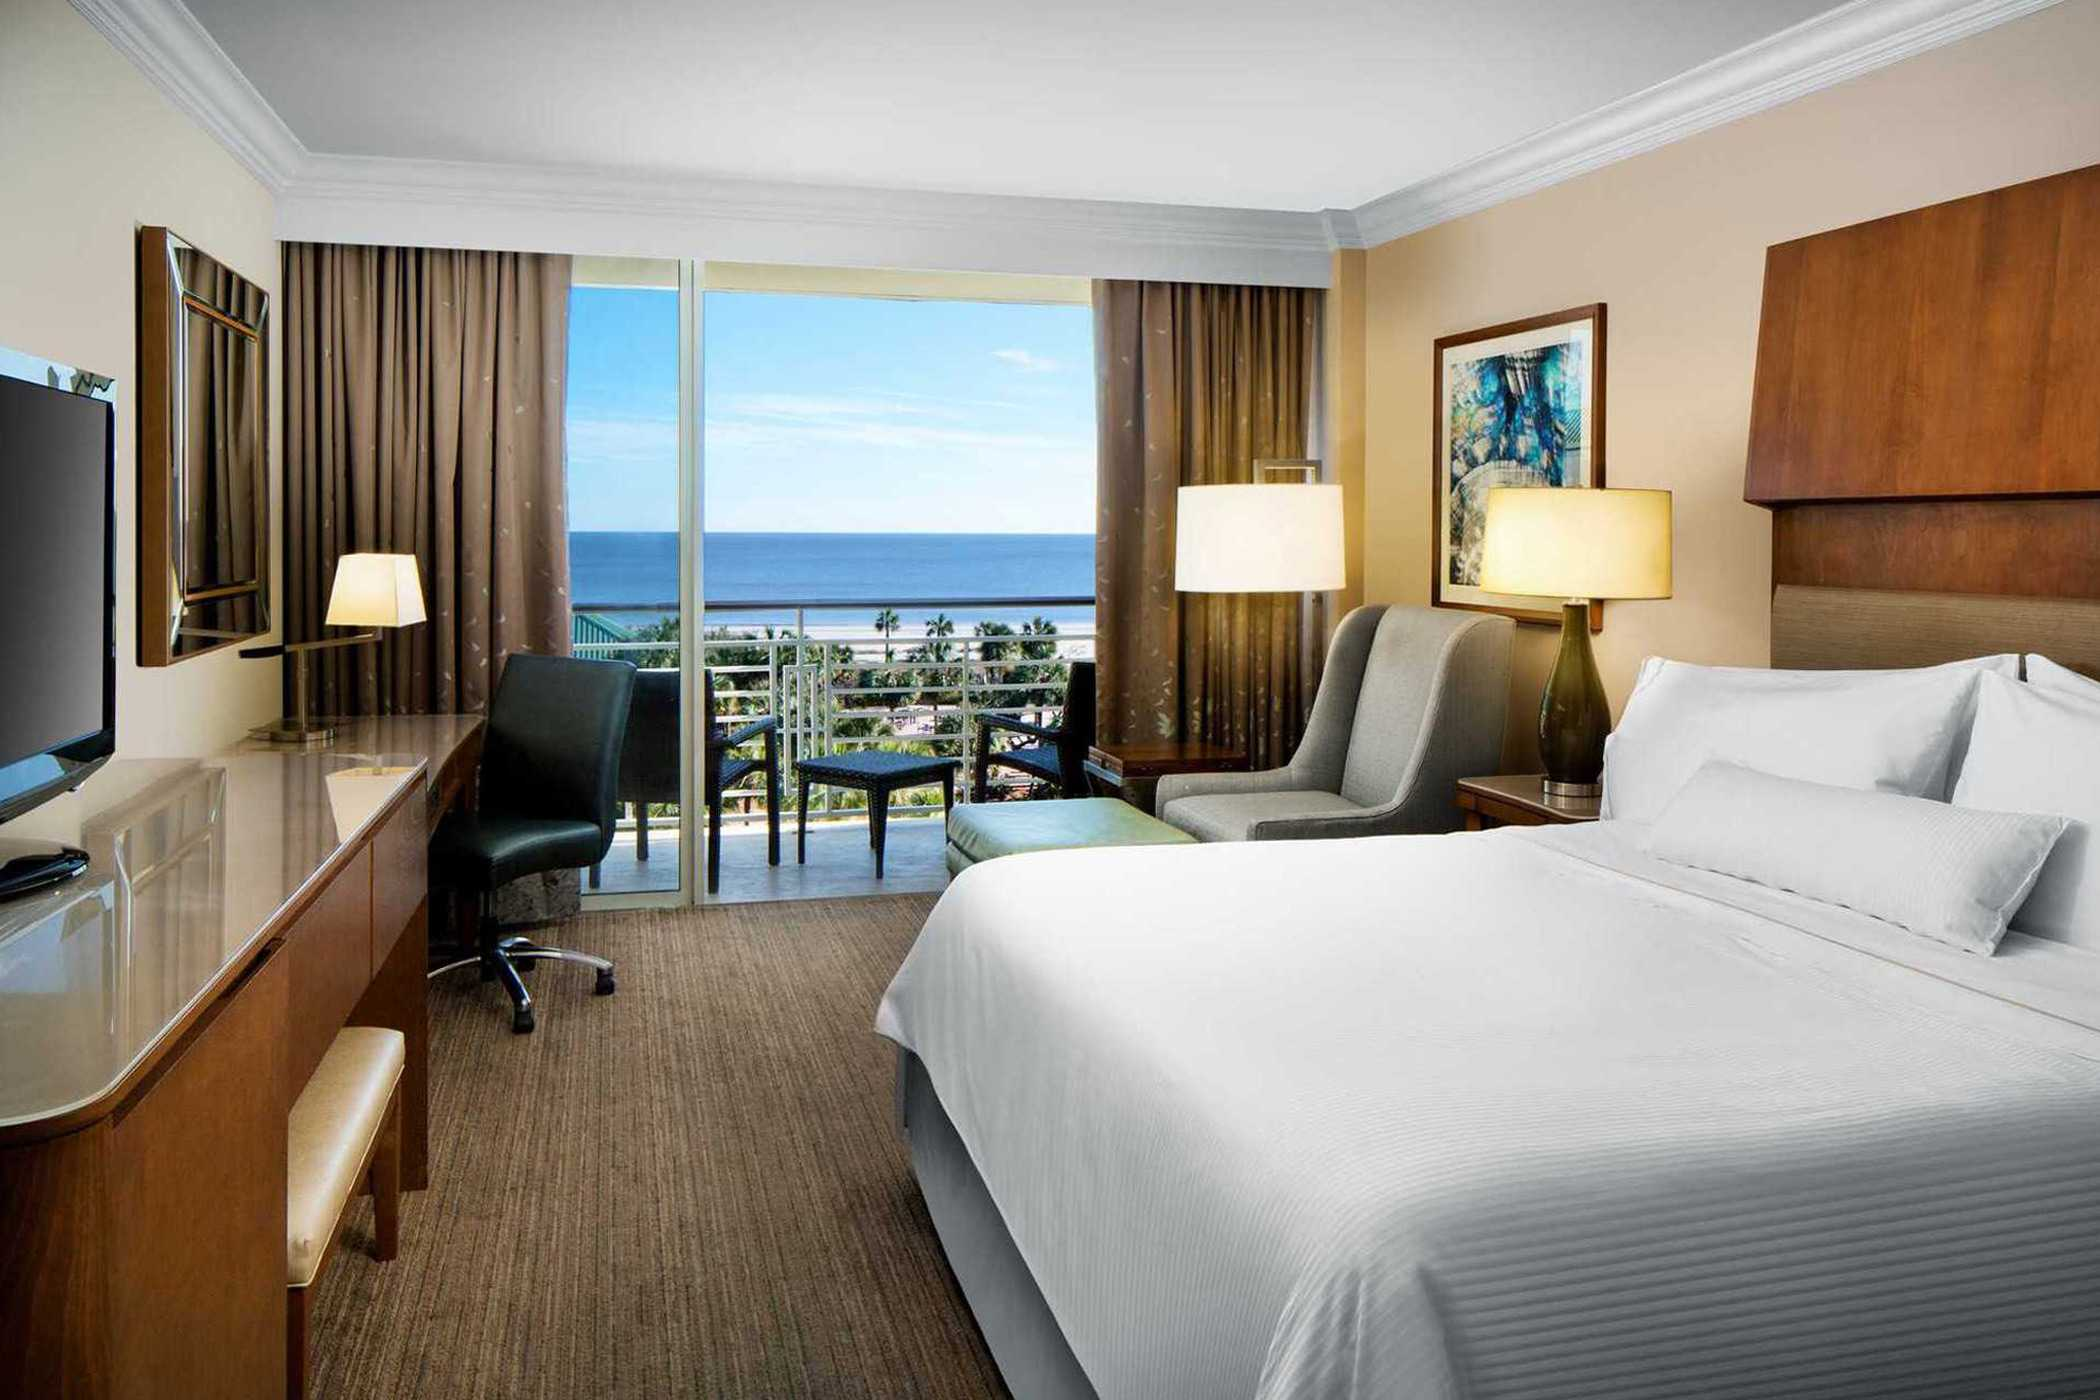 a bright guest room with a large bed and a view of the ocean